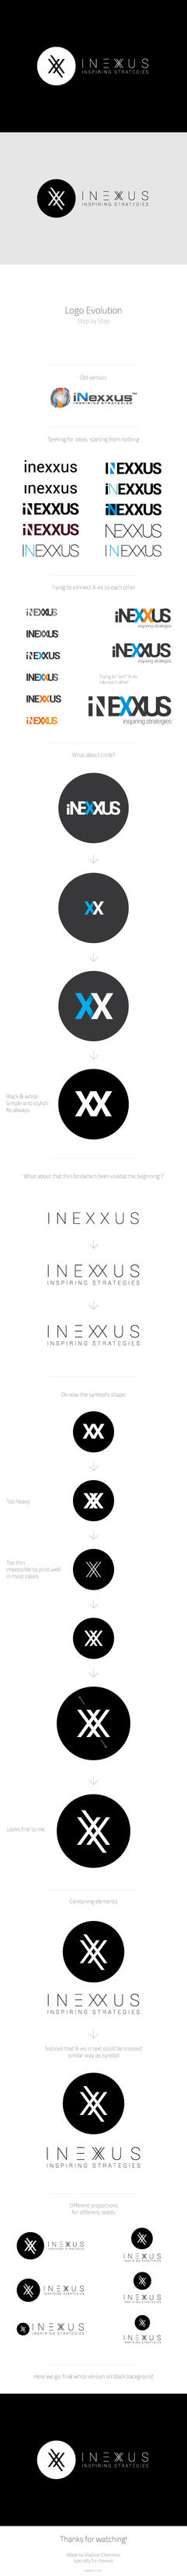 iNexxus. Making the Logo. Step by Step. by L0053R